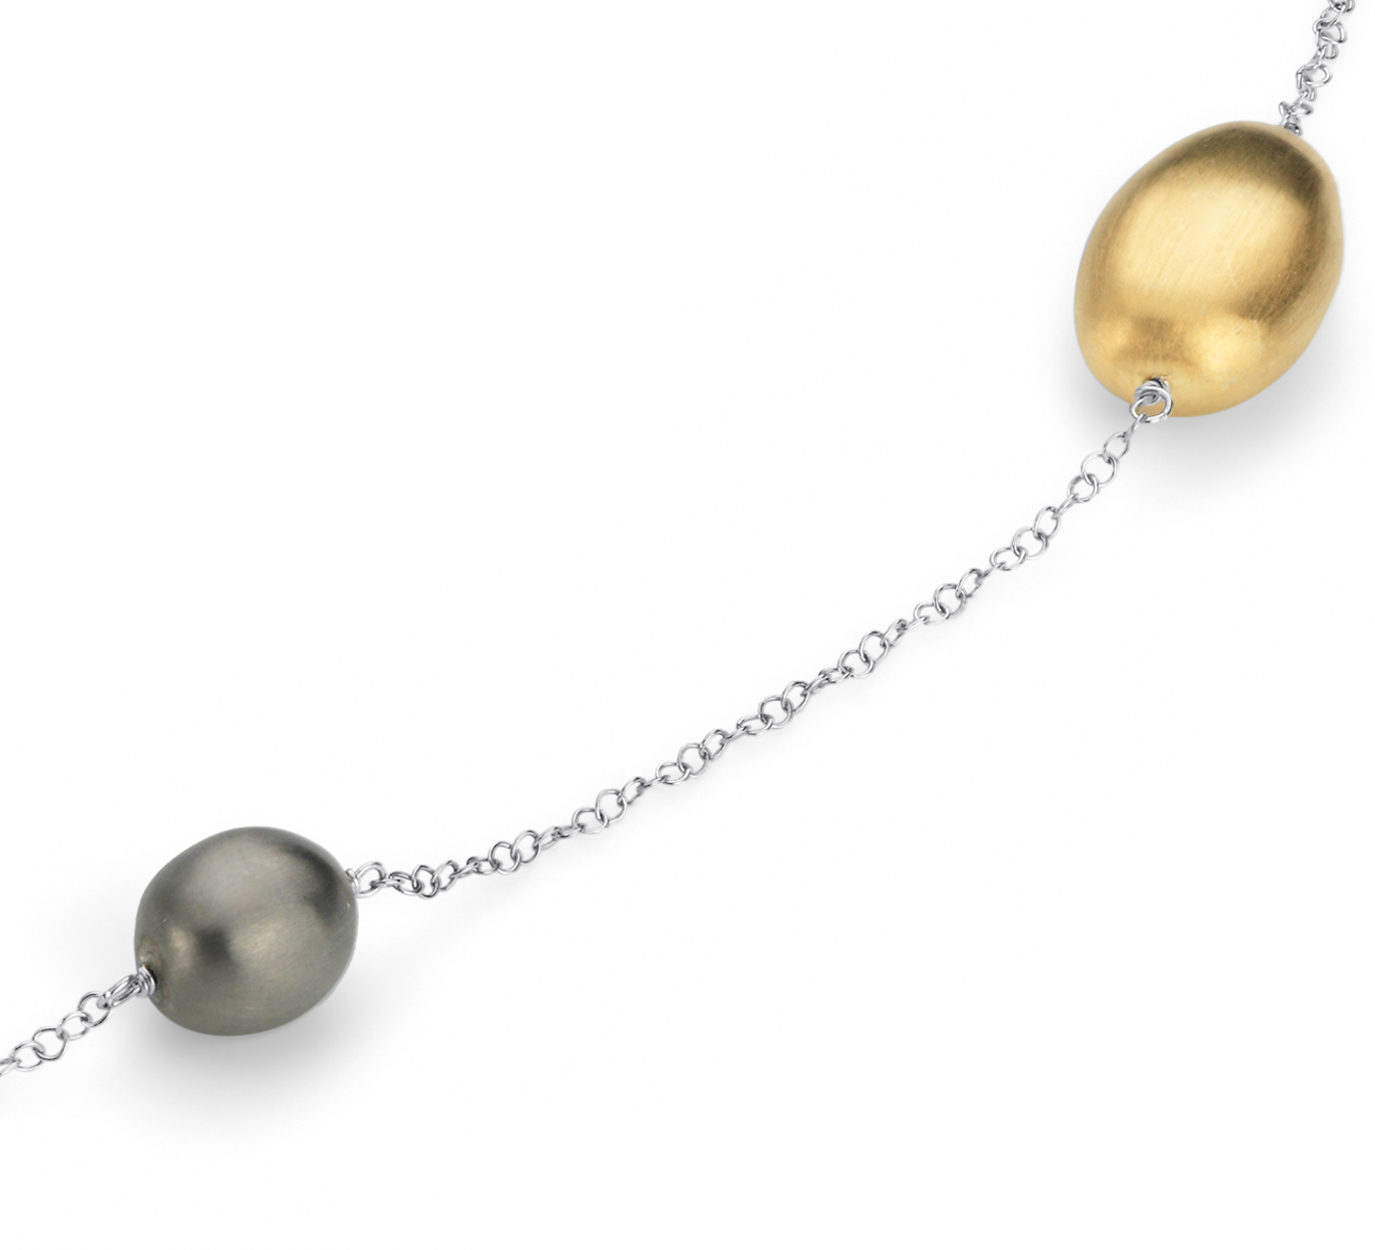 Matte Pebble Necklace in Sterling Silver and Yellow Gold Vermeil - 34